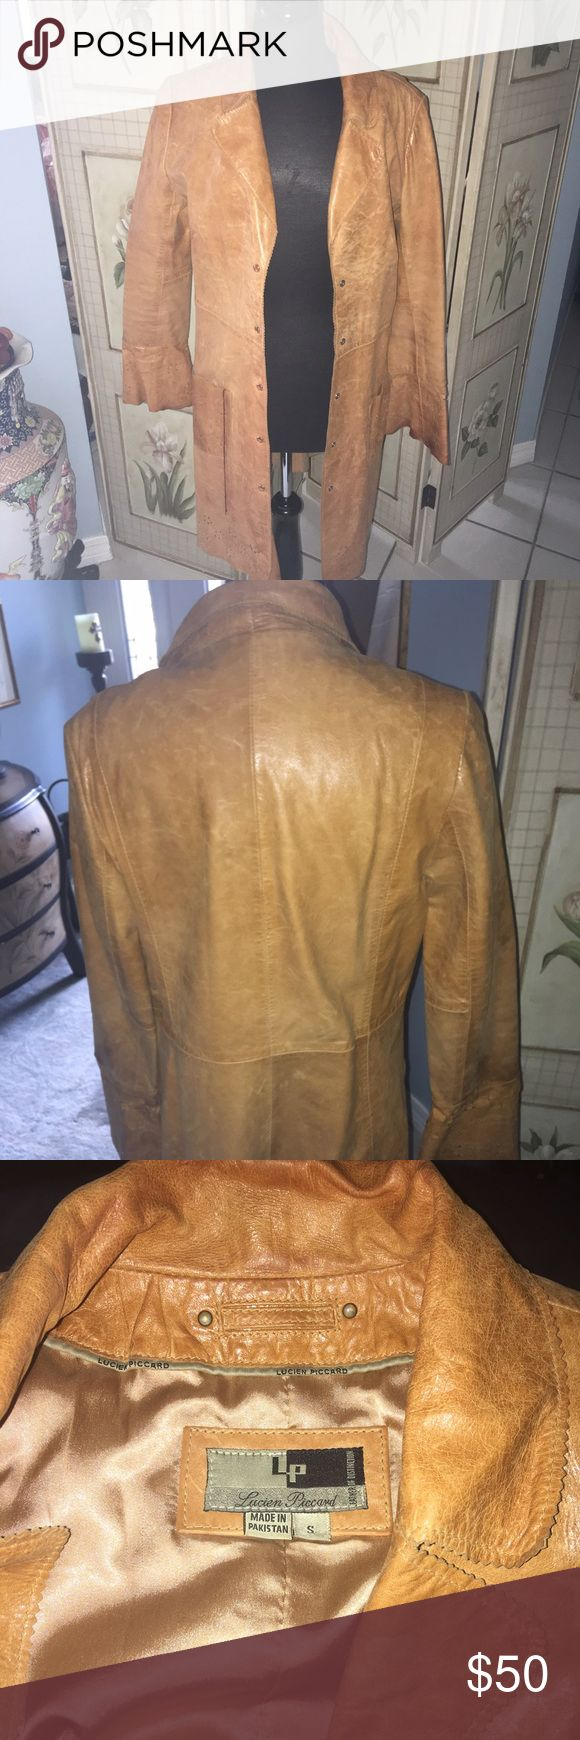 Lucien Piccard long Leather Jacket Excellent condition!  Doesn't get much wear down here due to being warm most of the year Lucien Piccard Jackets & Coats